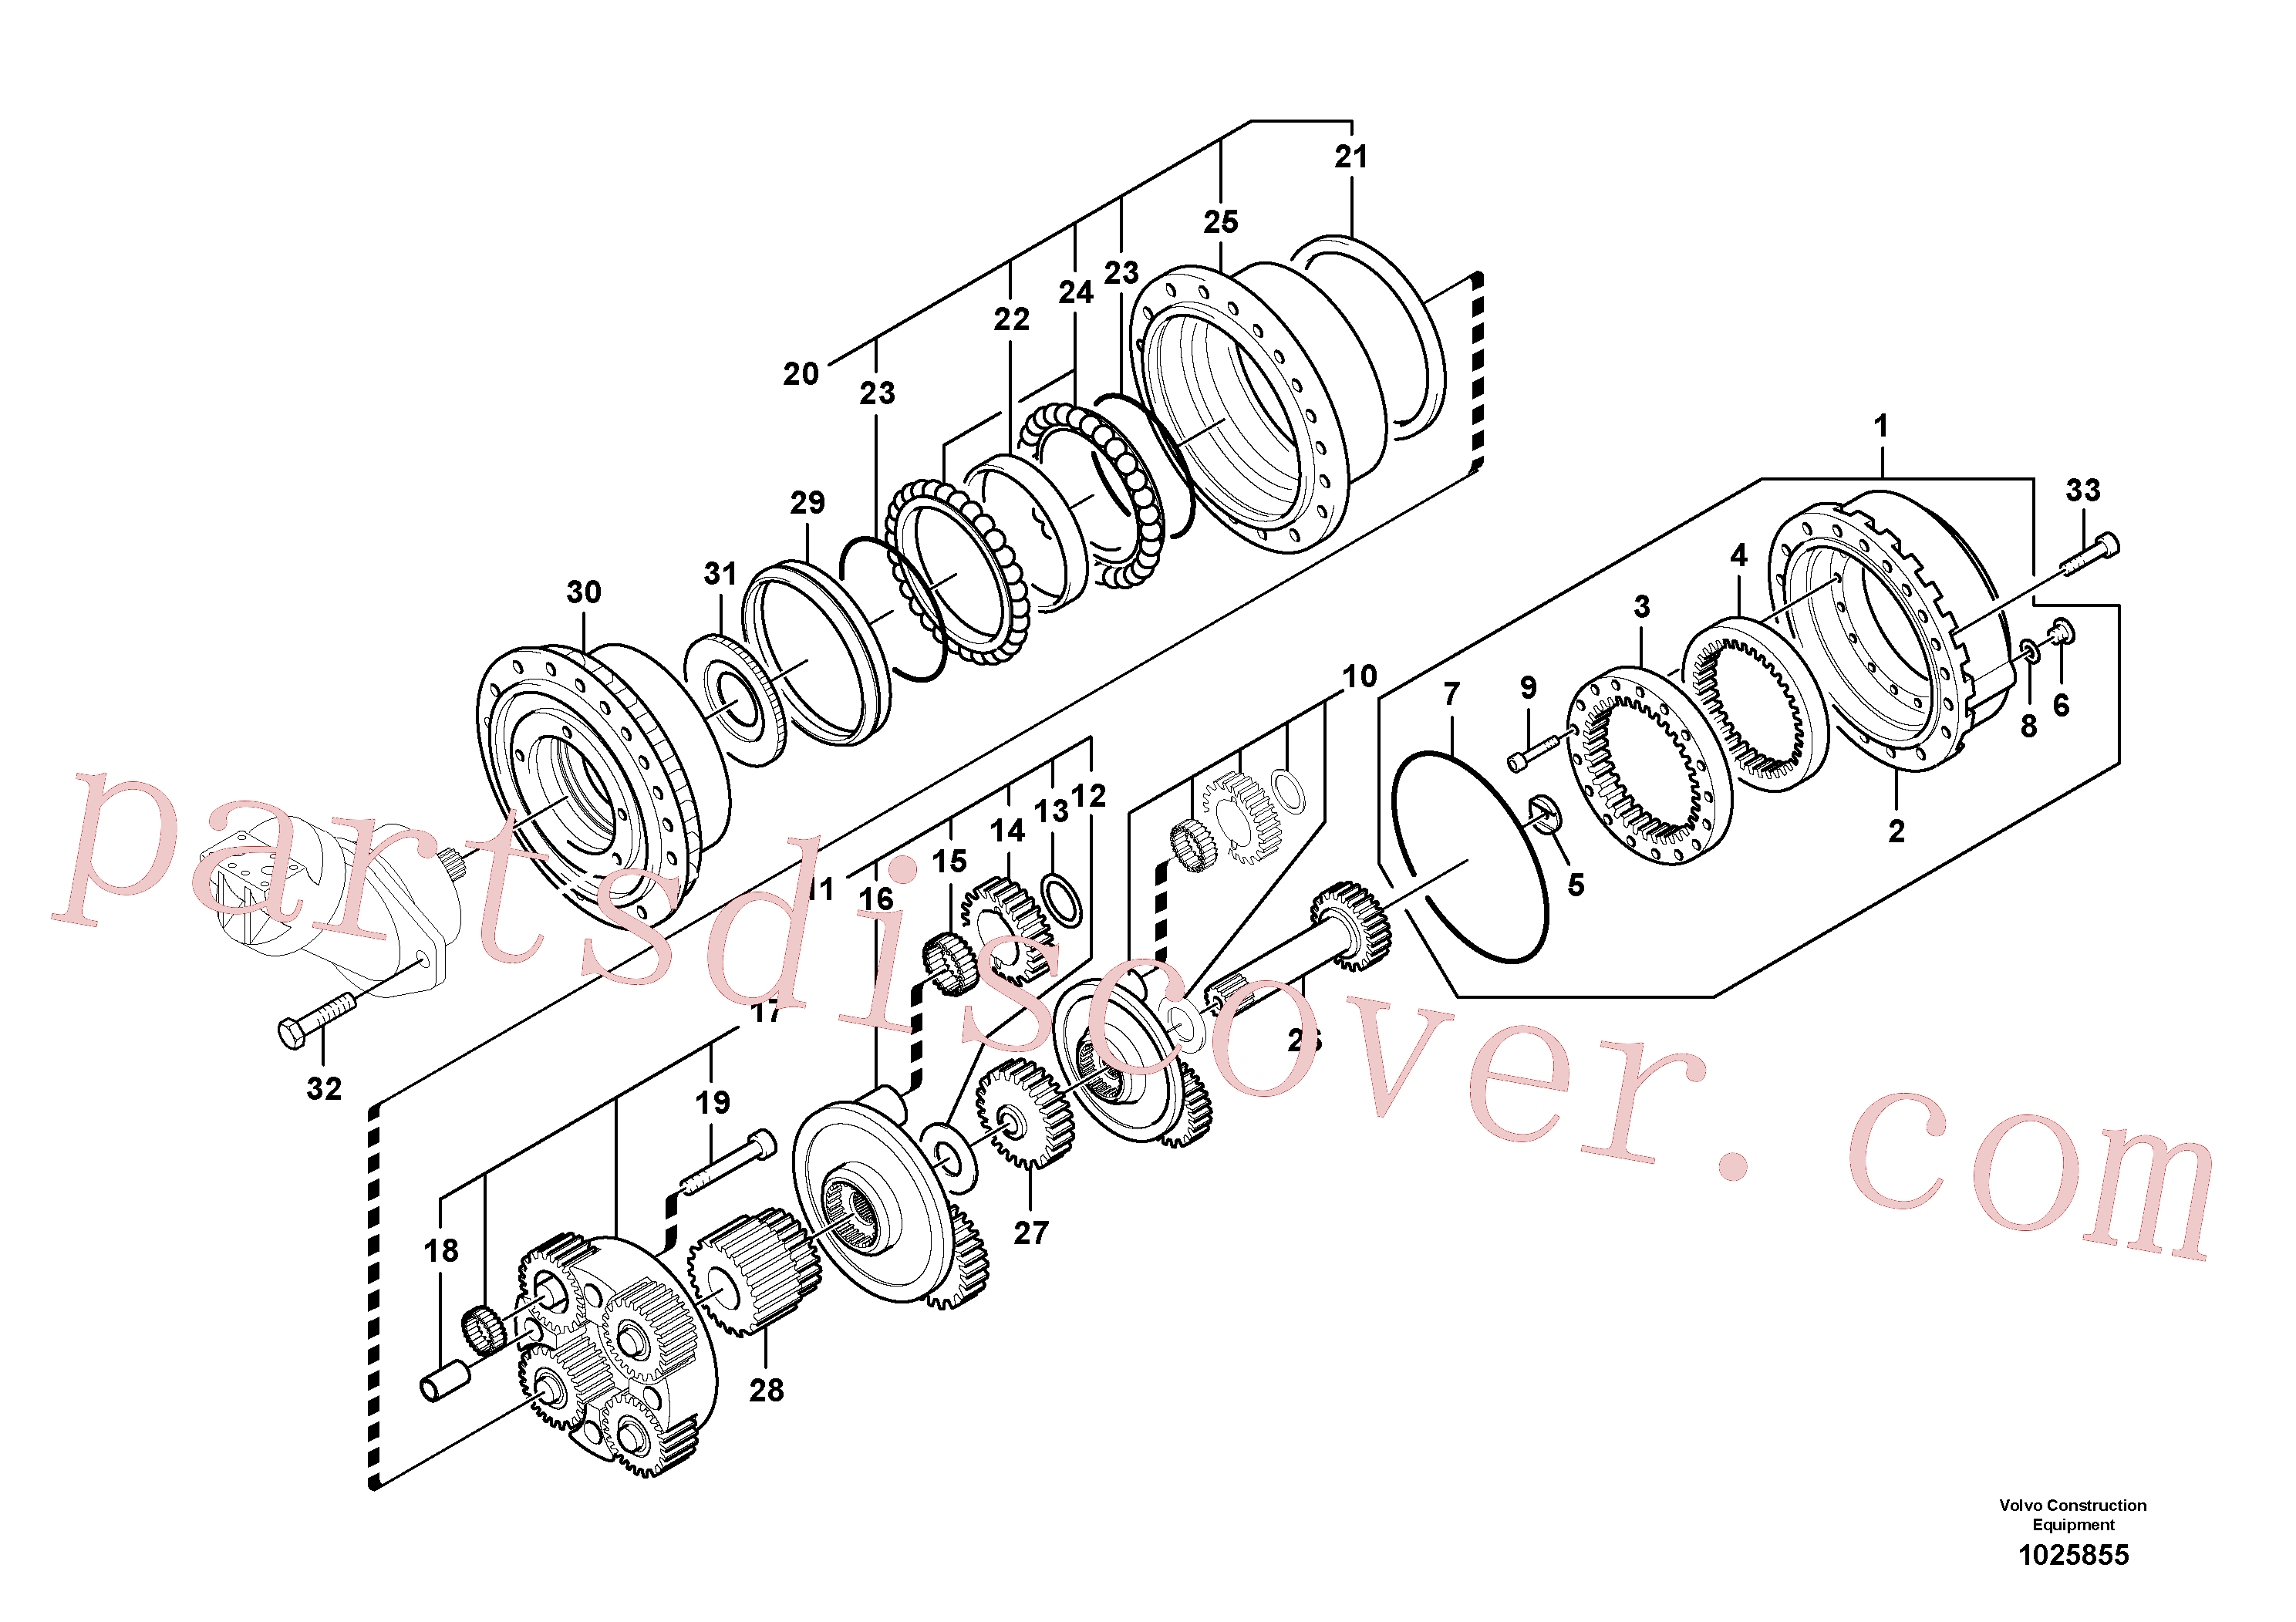 VOE14541740 for Volvo Travel gearbox(1025855 assembly)